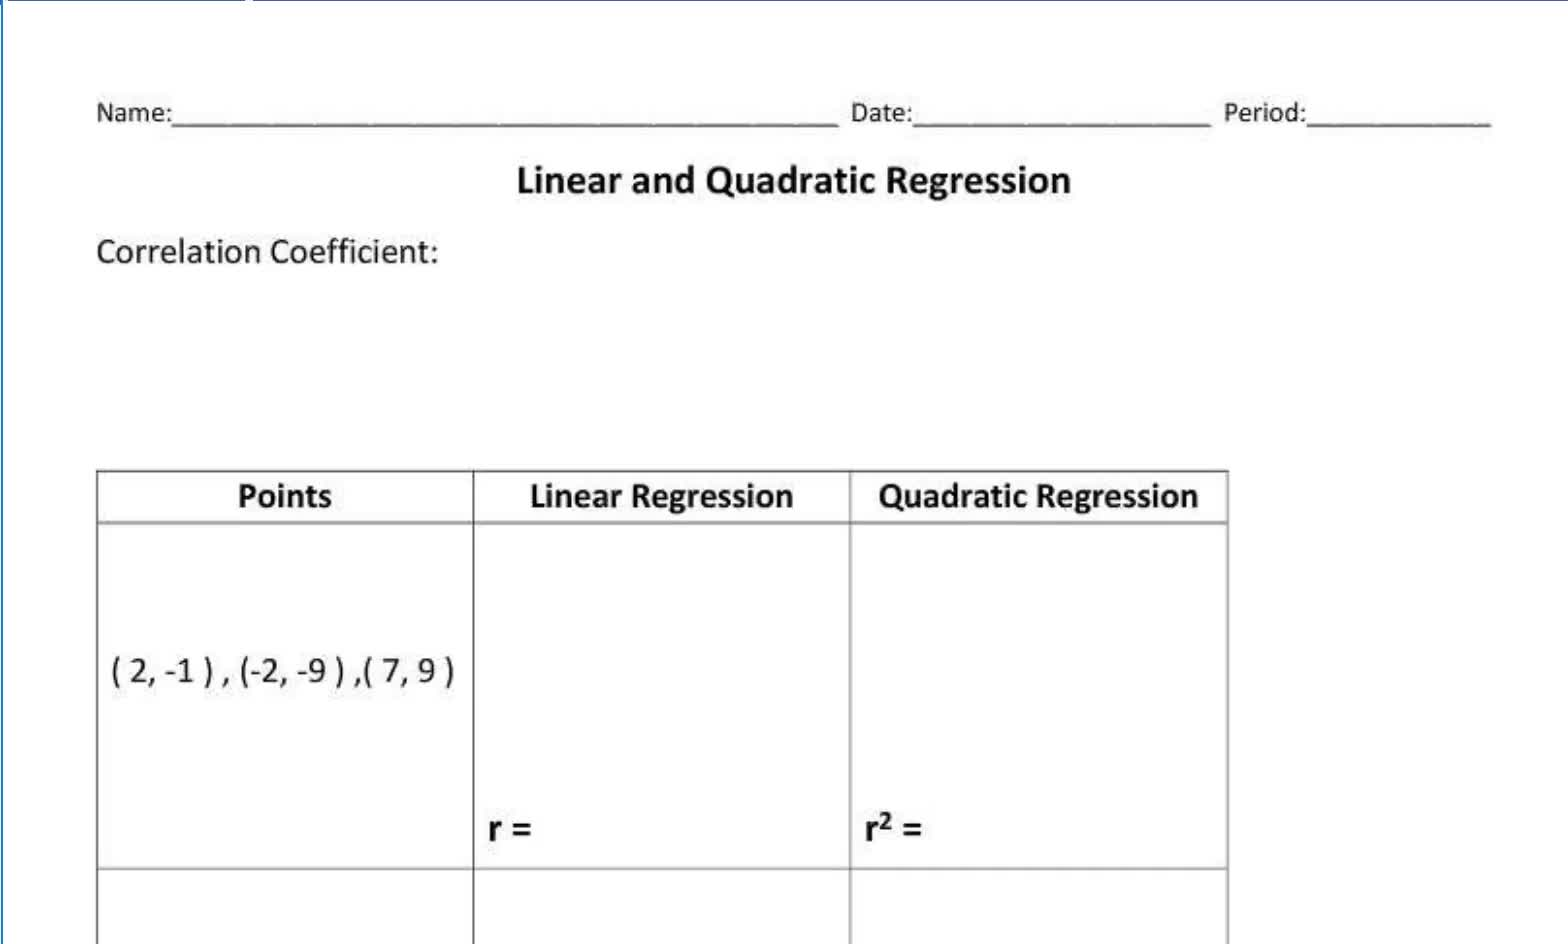 Linear and Quadratic Regression with Correlation Coefficients